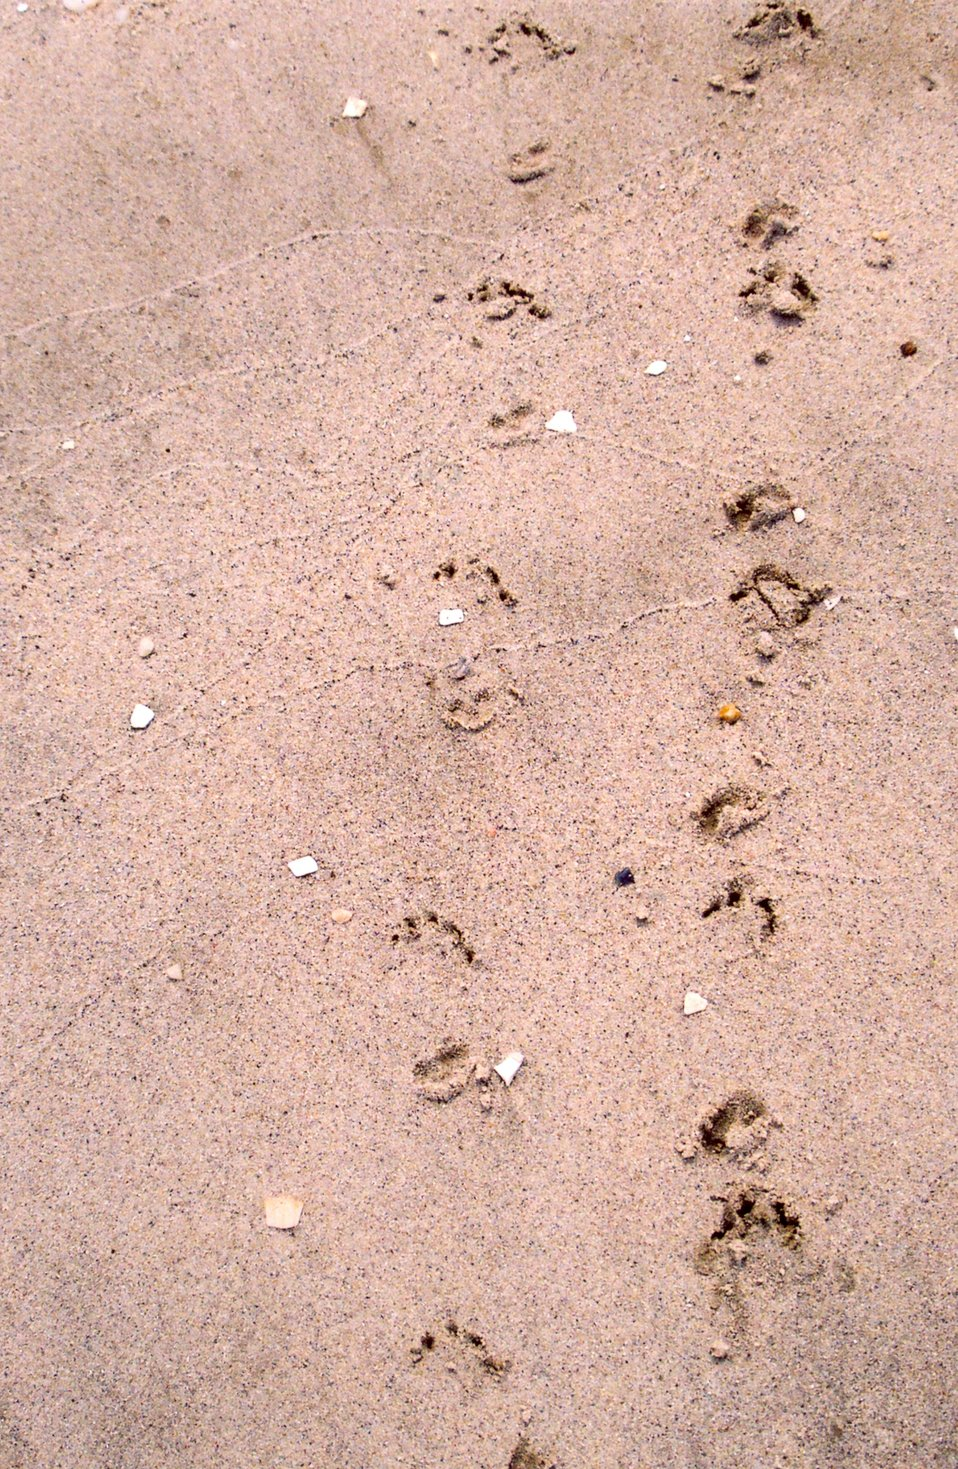 Terrapin tracks in wet sand